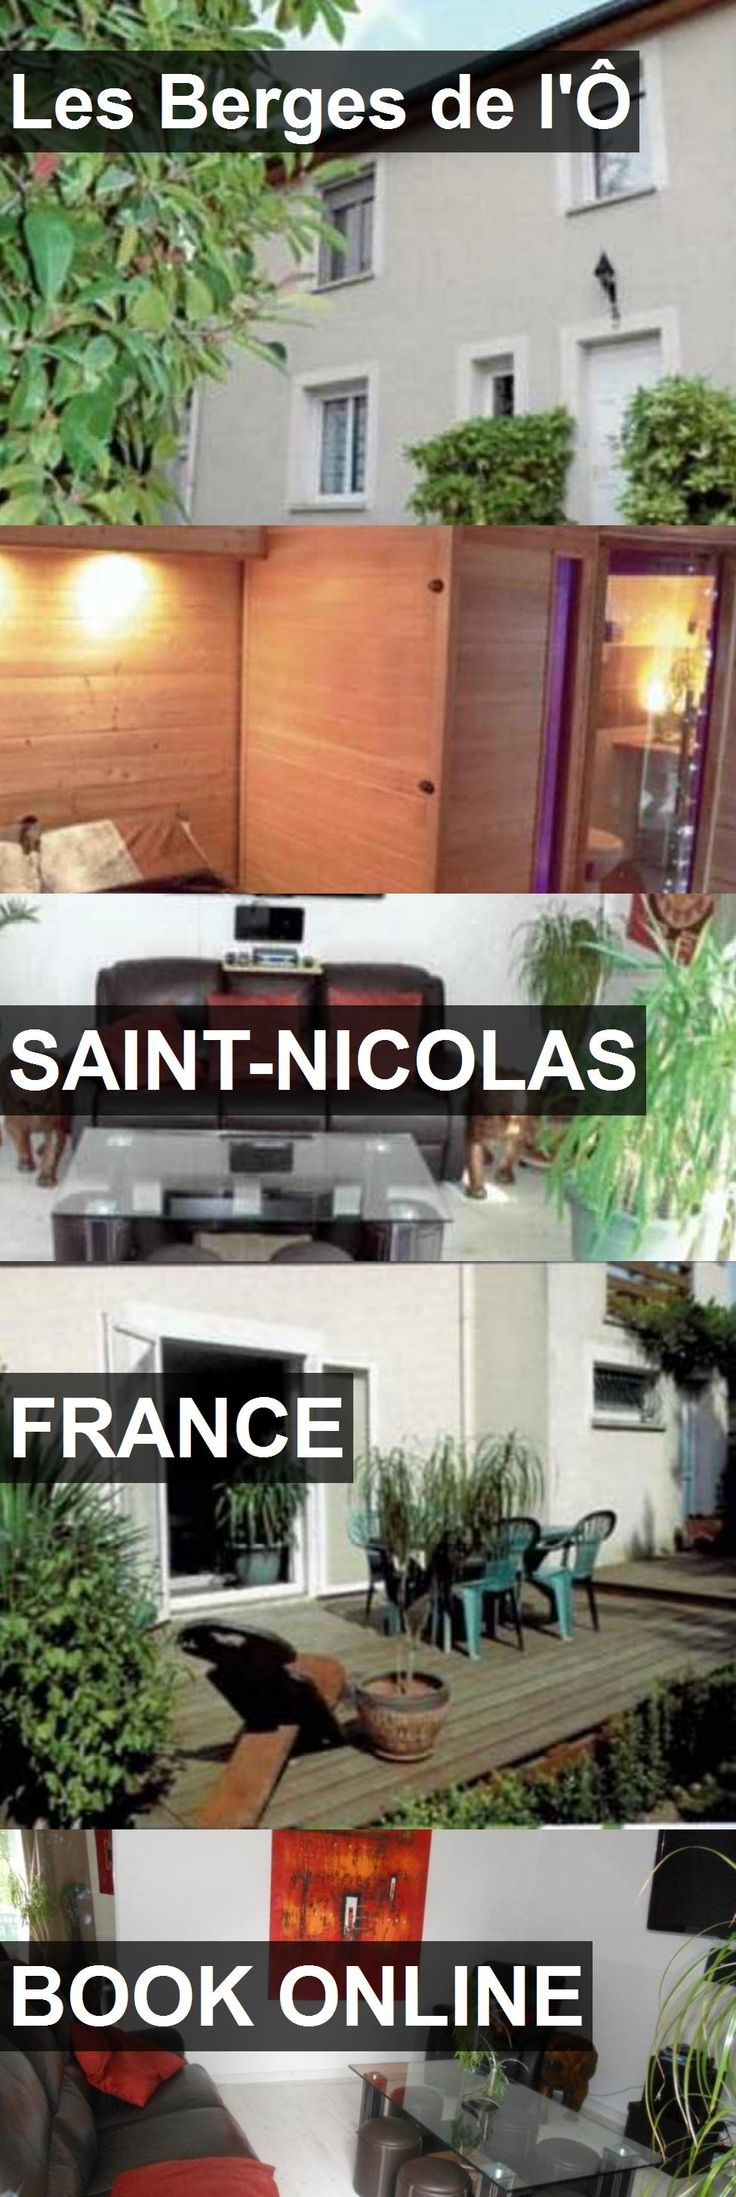 Hotel Les Berges de l'Ô in Saint-Nicolas, France. For more information, photos, reviews and best prices please follow the link. #France #Saint-Nicolas #travel #vacation #hotel